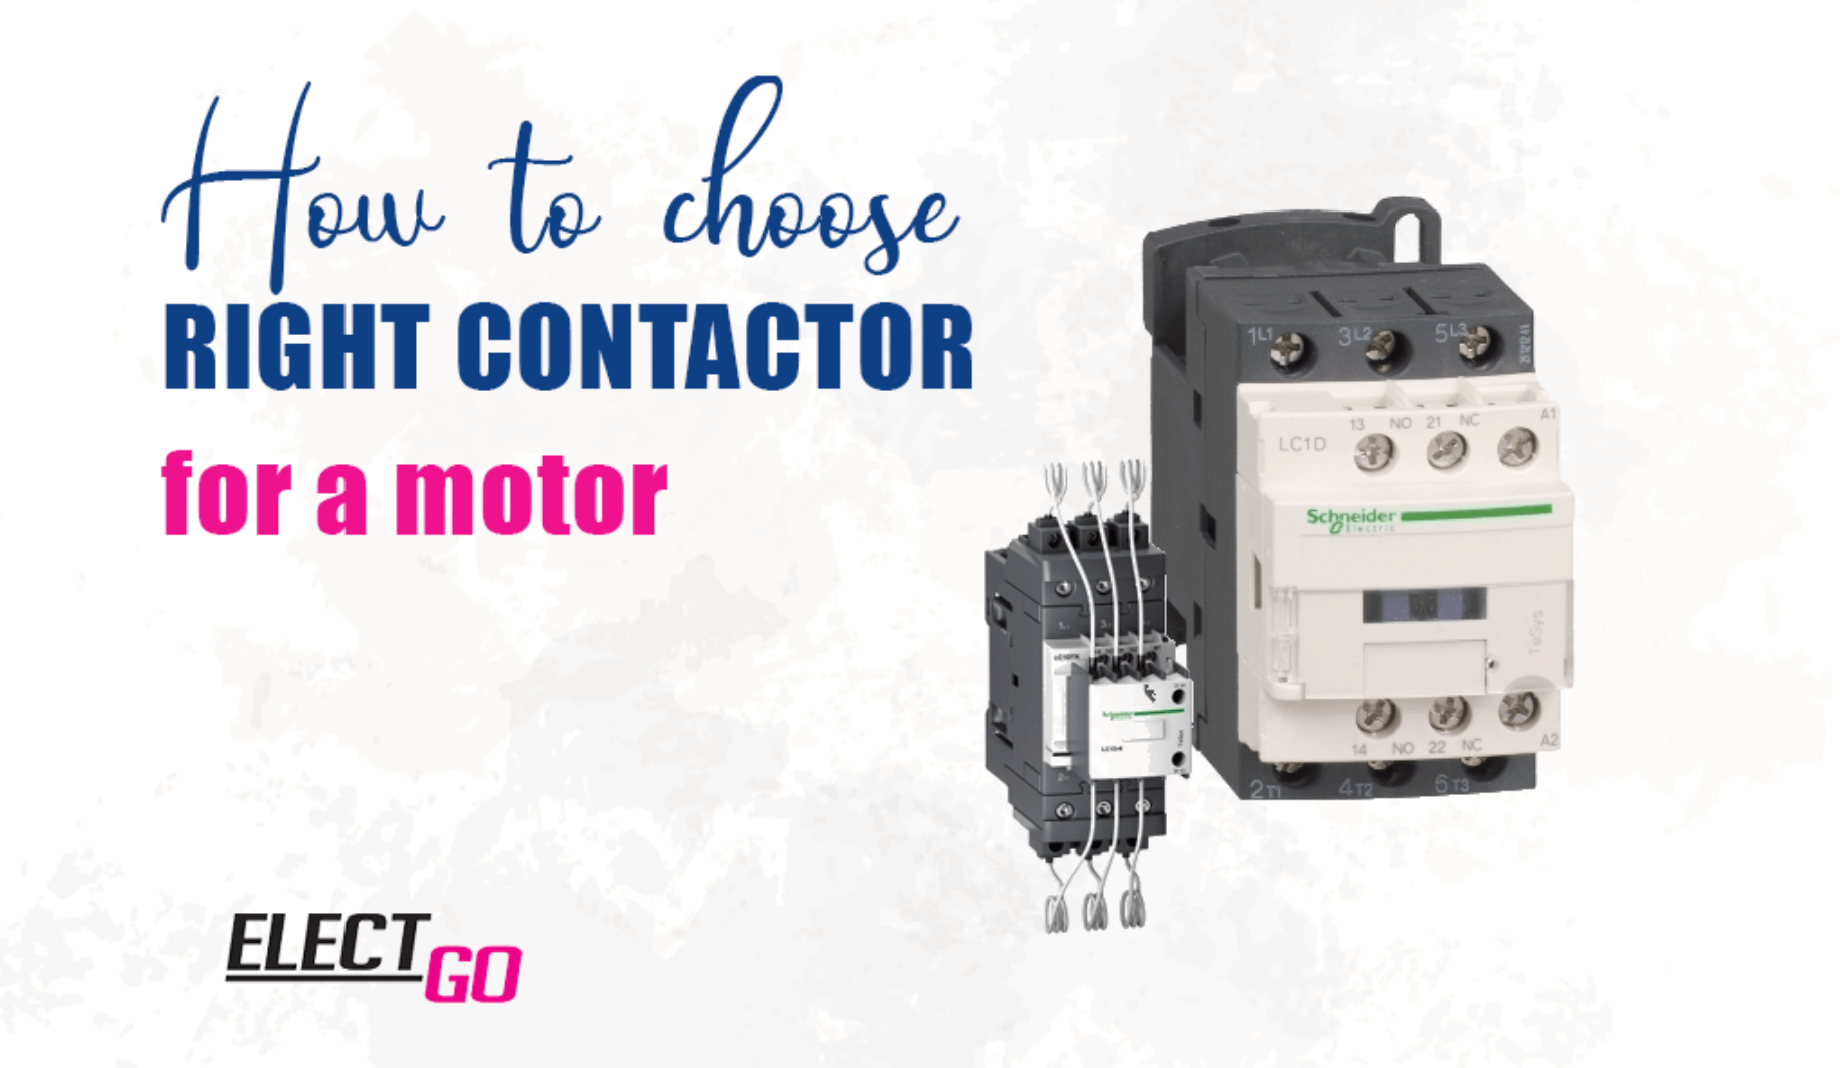 How to choose right contactor for your motor